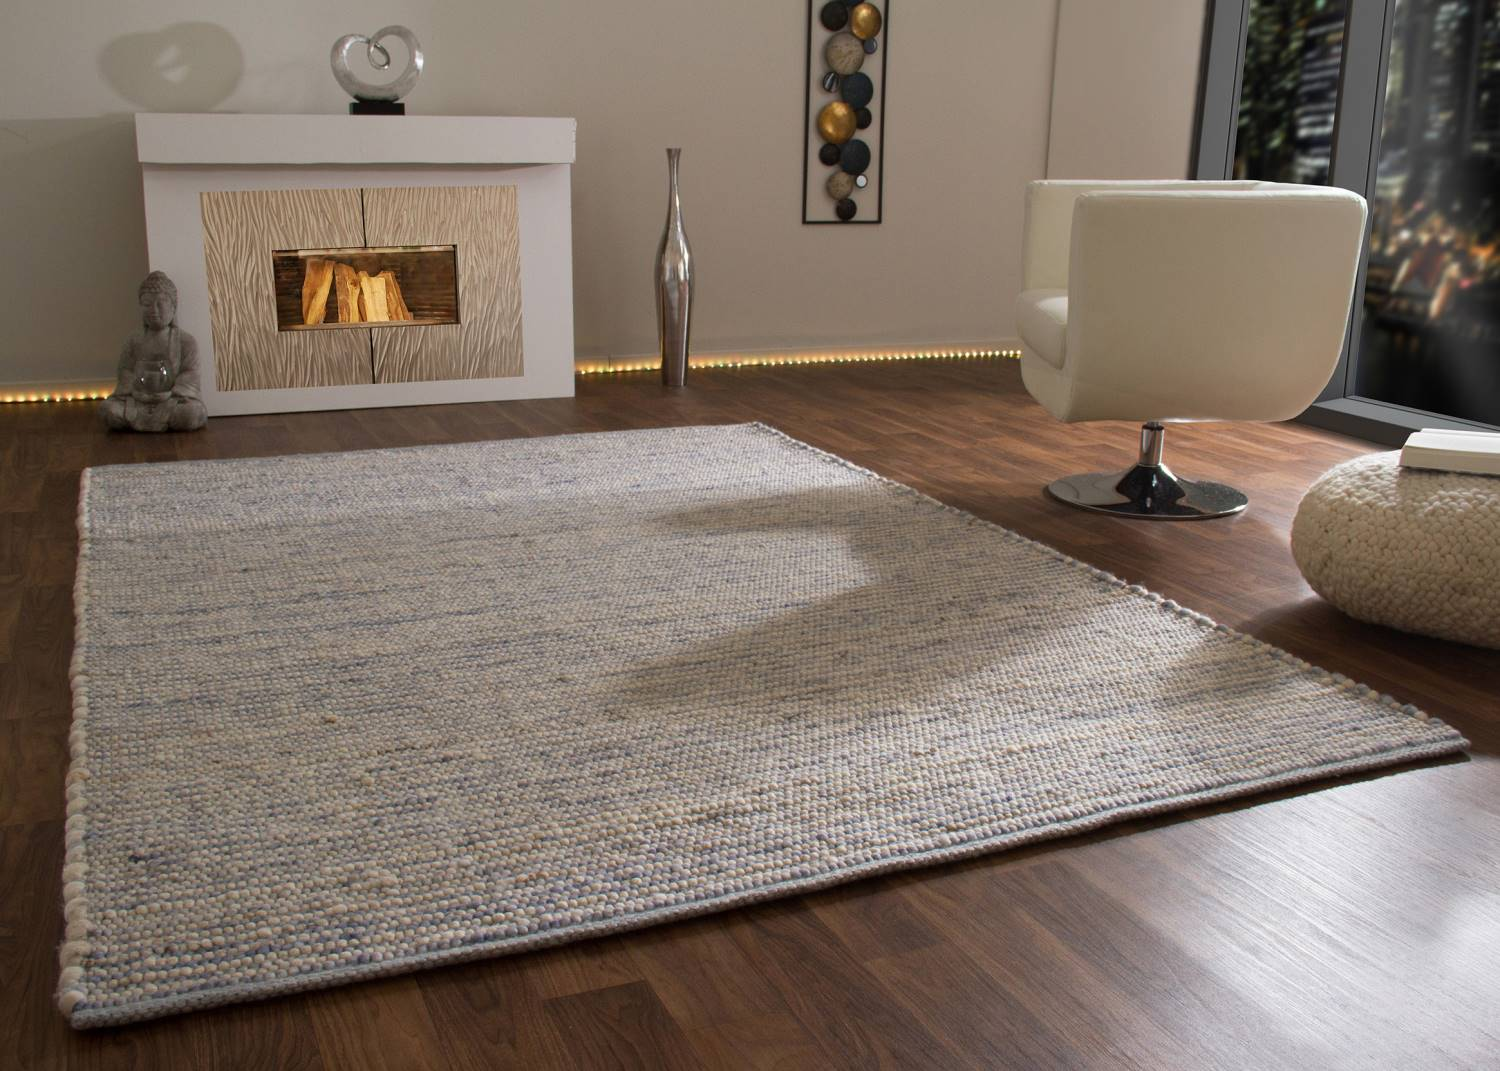 Teppich De Handweb Teppich Murnau Global Carpet